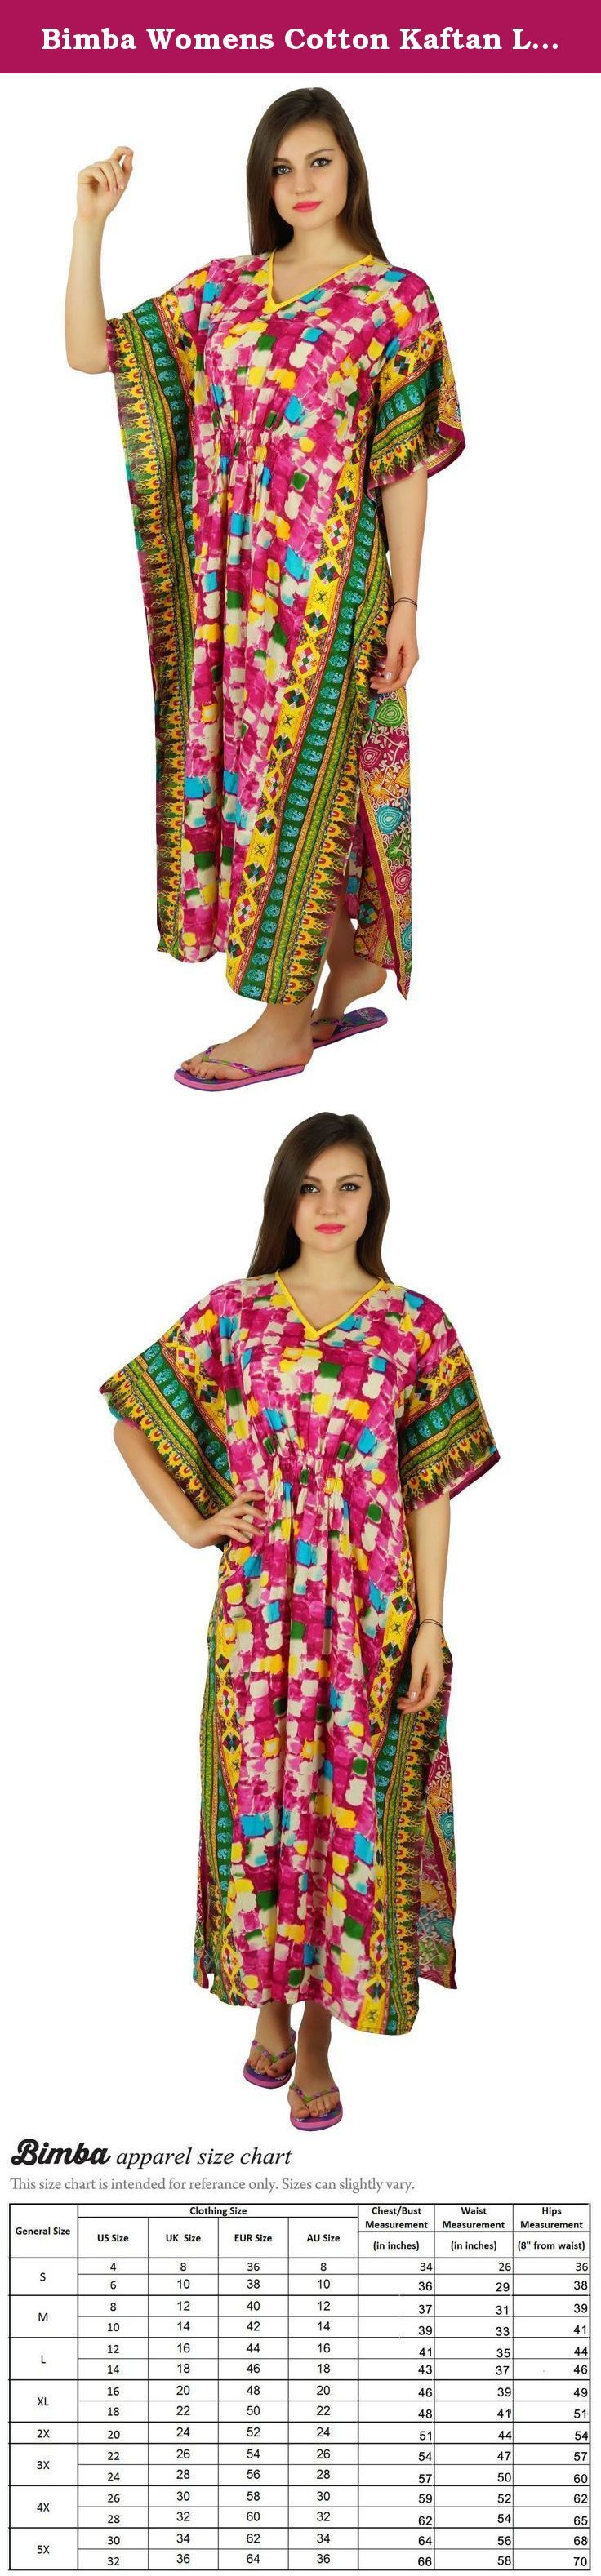 Bimba Womens Cotton Kaftan Long Maxi Printed Caftan Smocked Waist Night Wear. The artisans at Bimba crafted out this extremely splendid long kaftan out of cotton fabric. The Pannel design and kimono sleeves enhances the look of the kaftan. The dress is of full length which maintains your grace and classiness.. This cotton made kaftan comes with a smocked elastic waist from front and back and short kimono sleeves. . Perfect as a Coverup OR Night wear comfort clothing Material: Cotton…